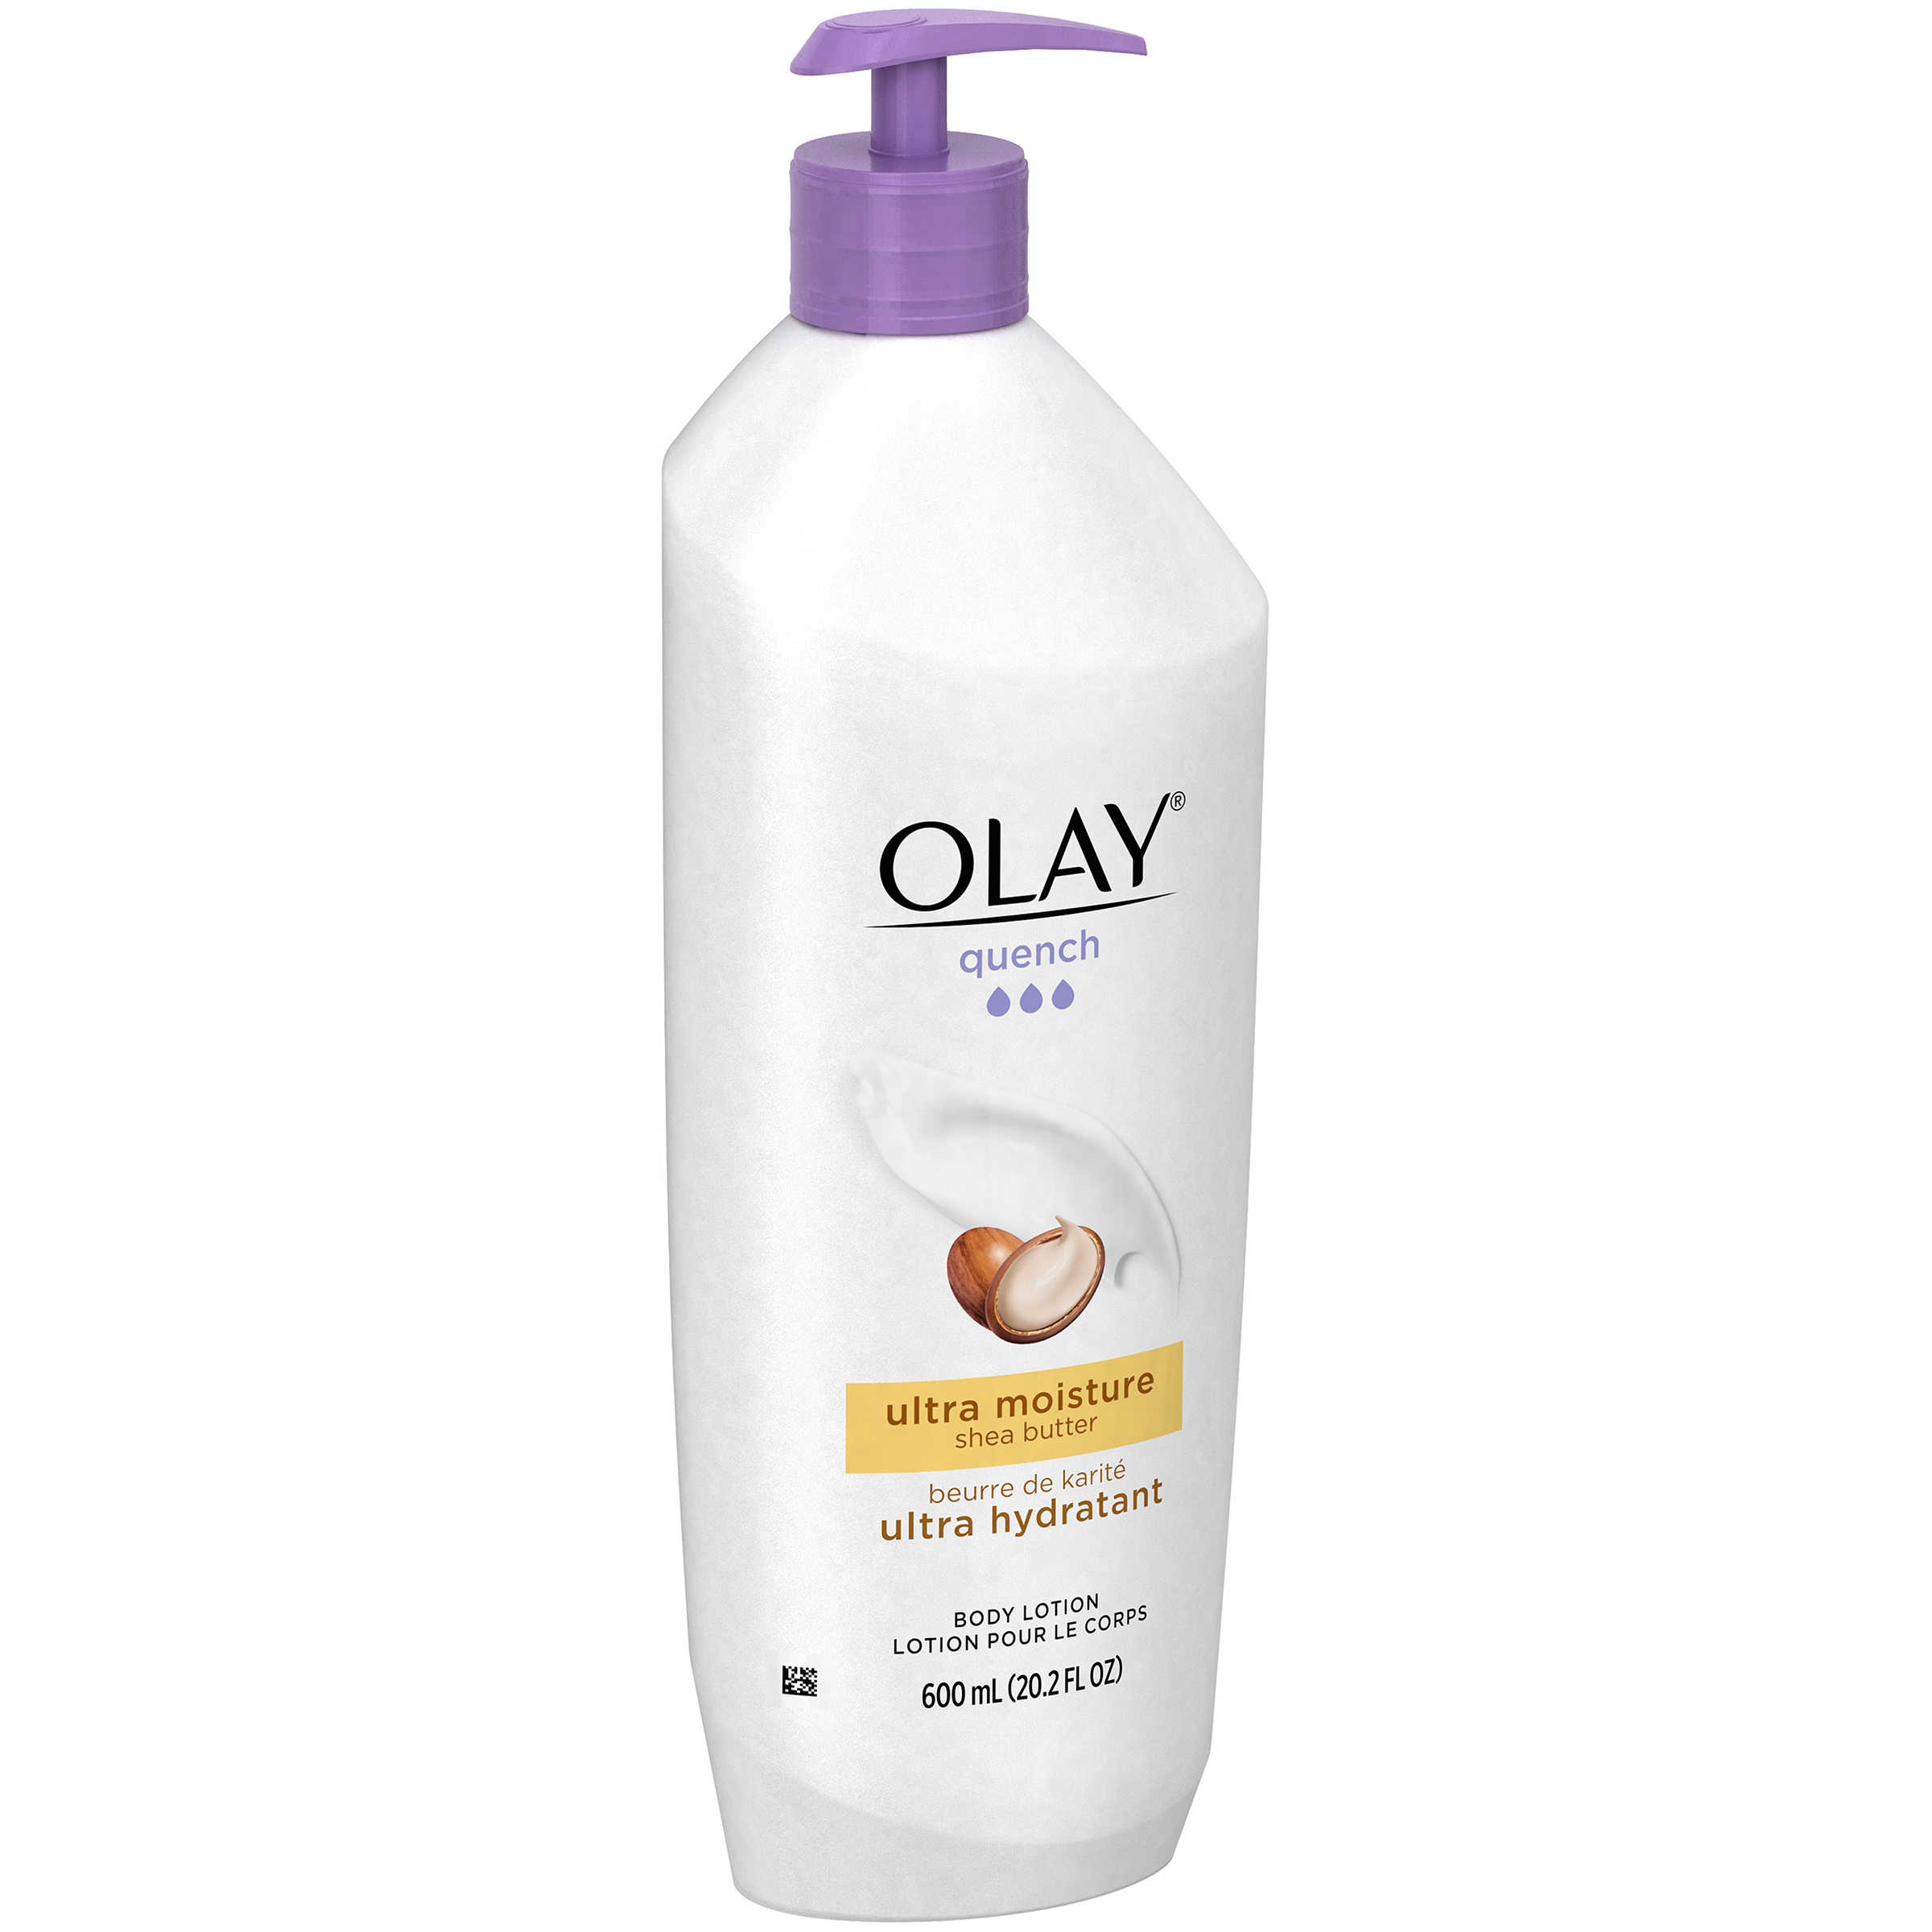 Olay Quench Ultra Moisture Shea Butter Body Lotion 20.2 fl. oz. Pump